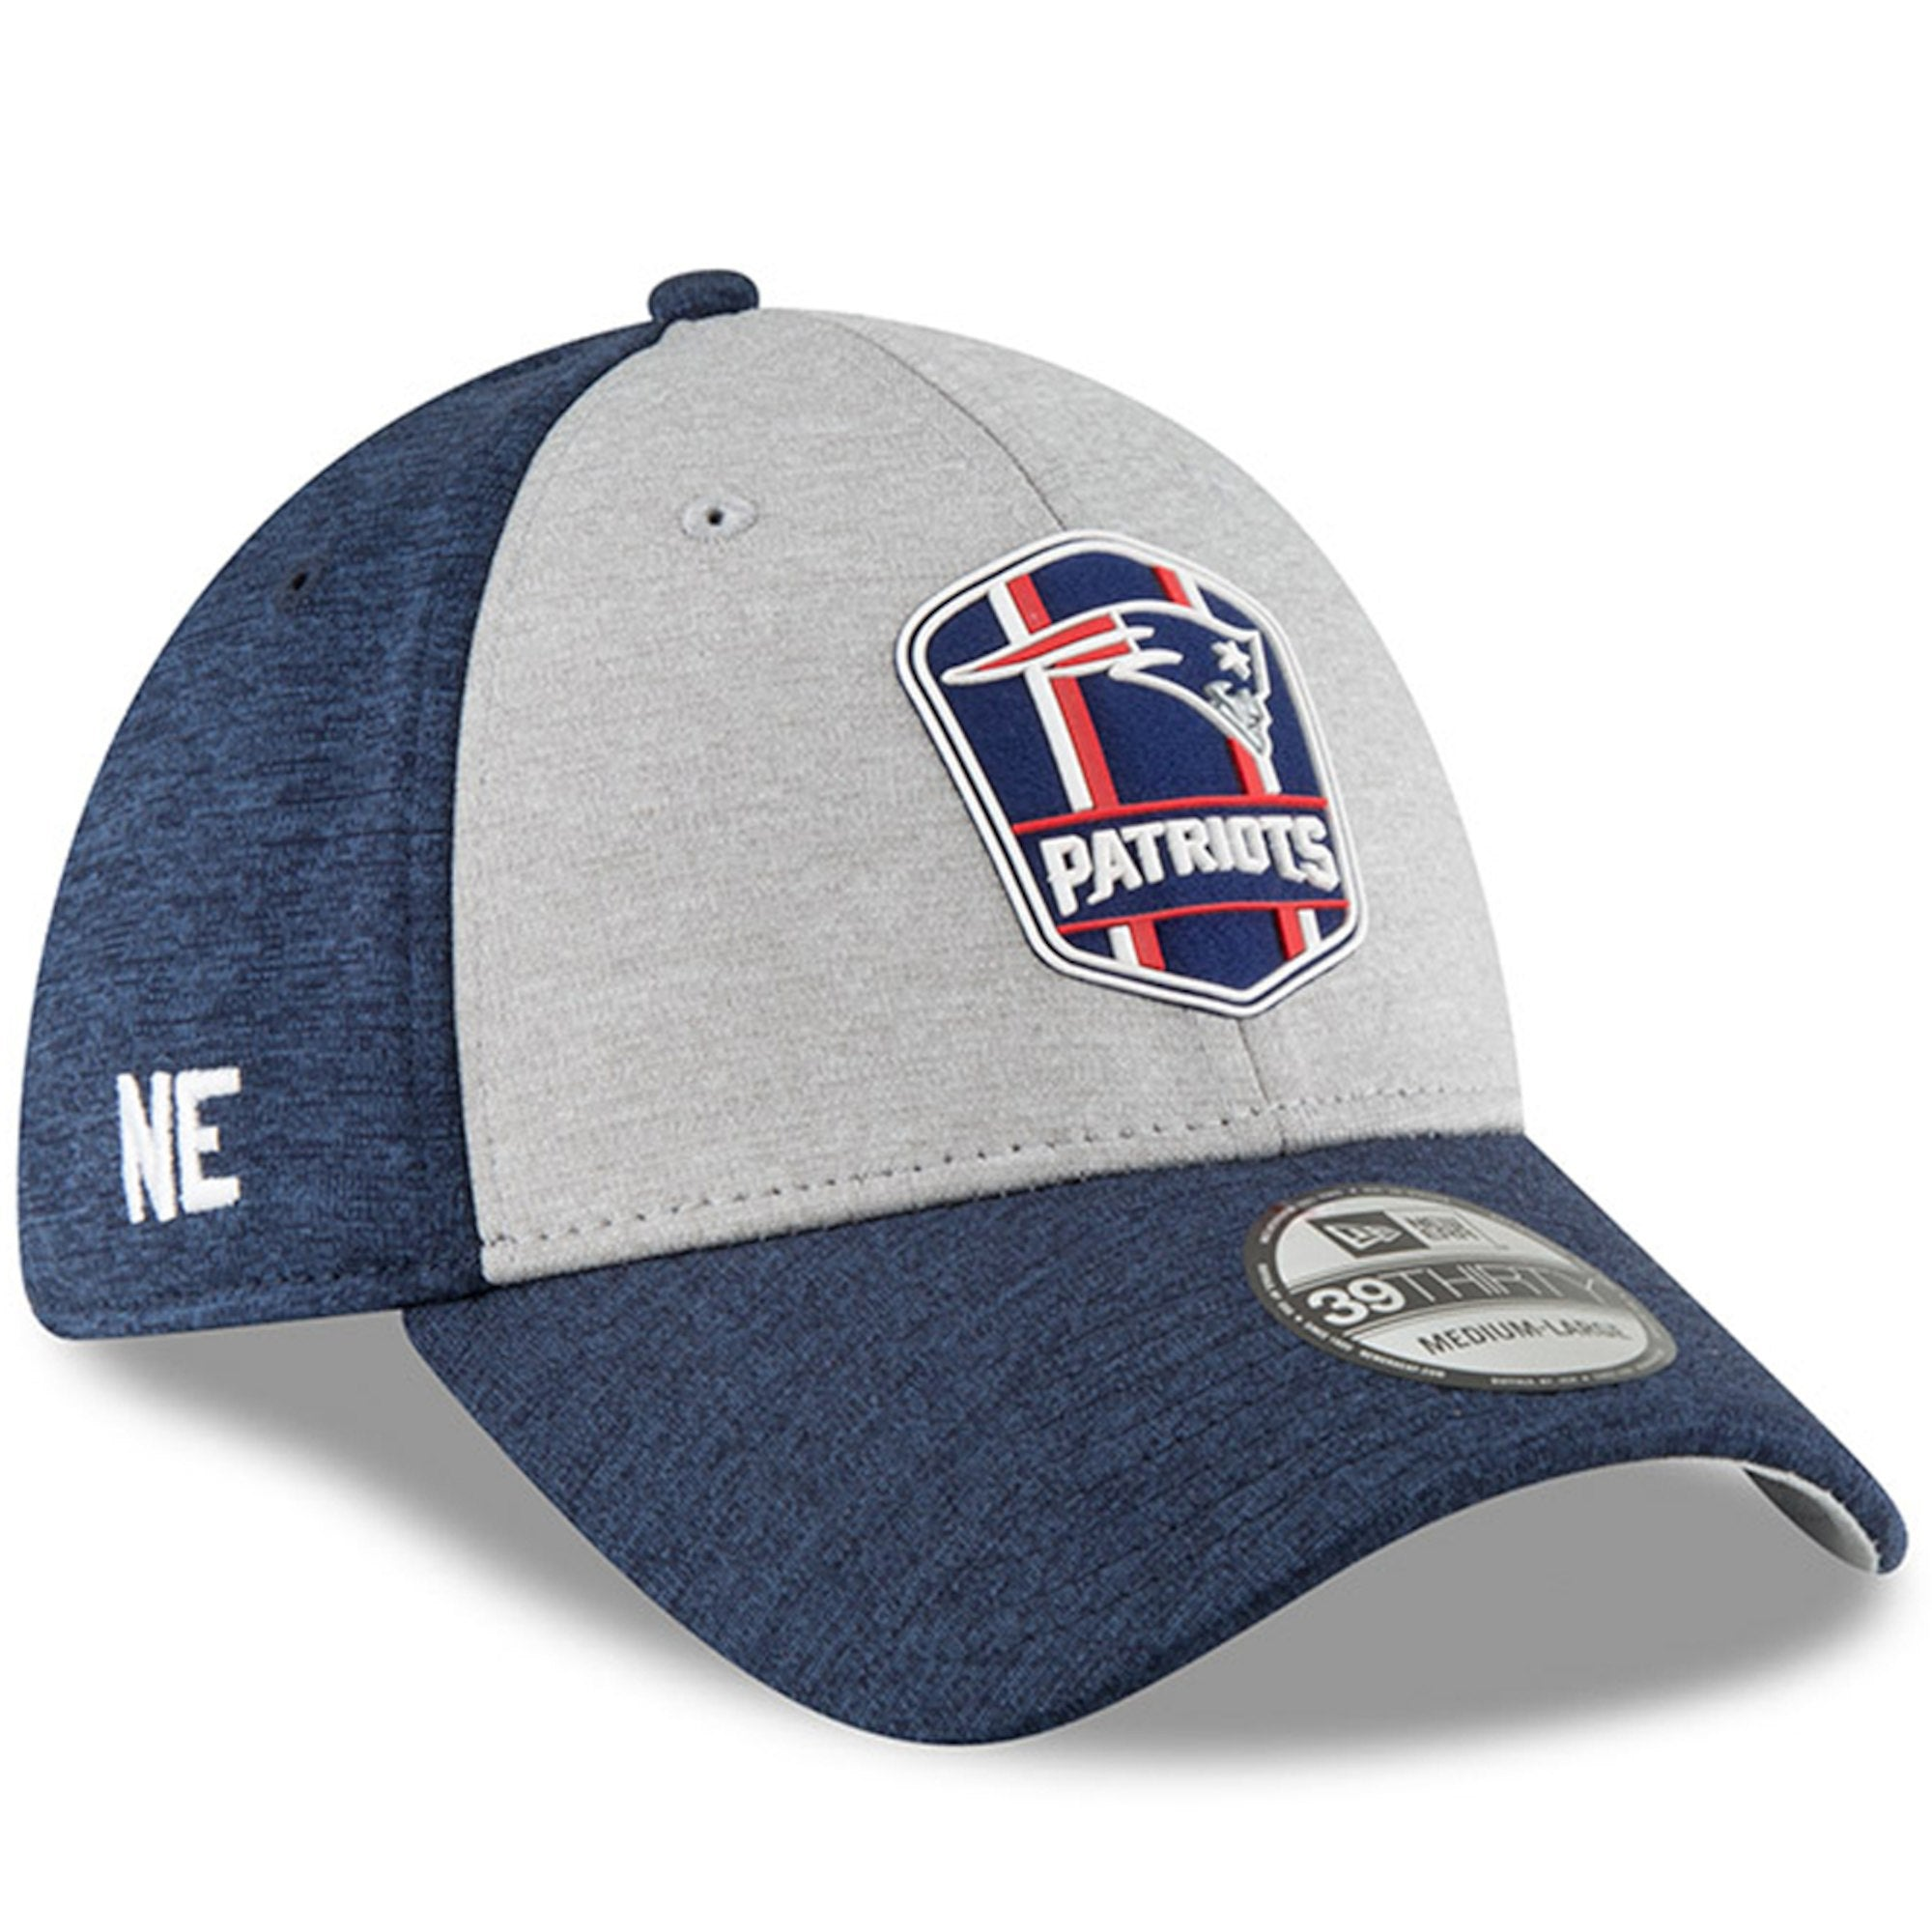 quality design bfc9d c8493 ... Men s New England Patriots New Era Heather Gray Navy 2018 NFL Sideline  Road Official 39THIRTY ...